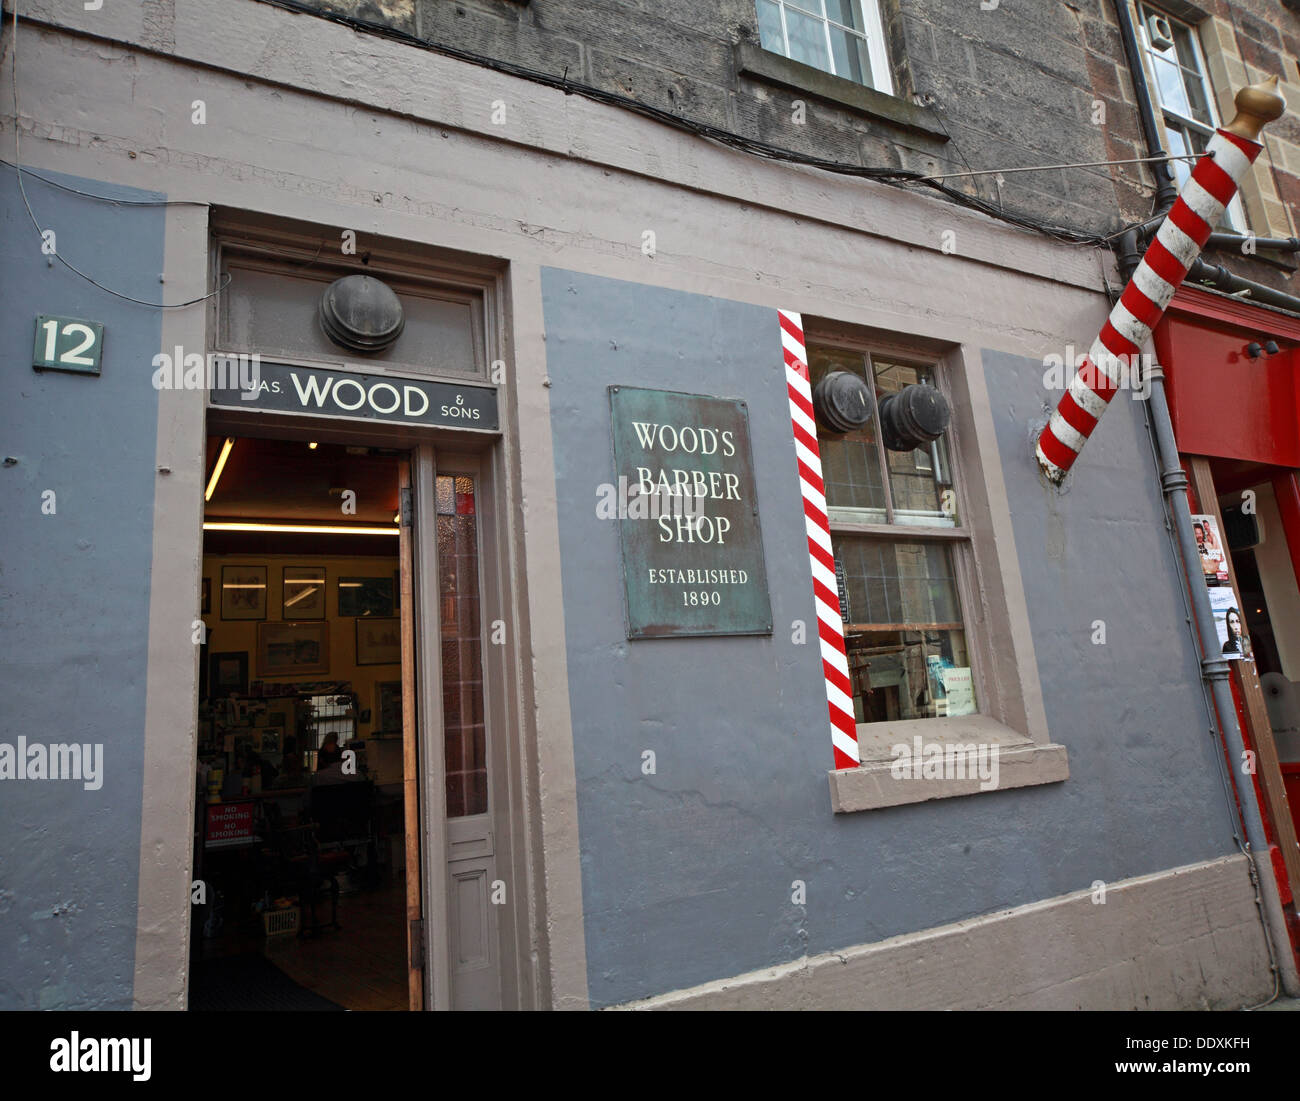 Traditional barbers, Woods Barber Shop, 12 Drummond St, Edinburgh EH8 9TU - Stock Image